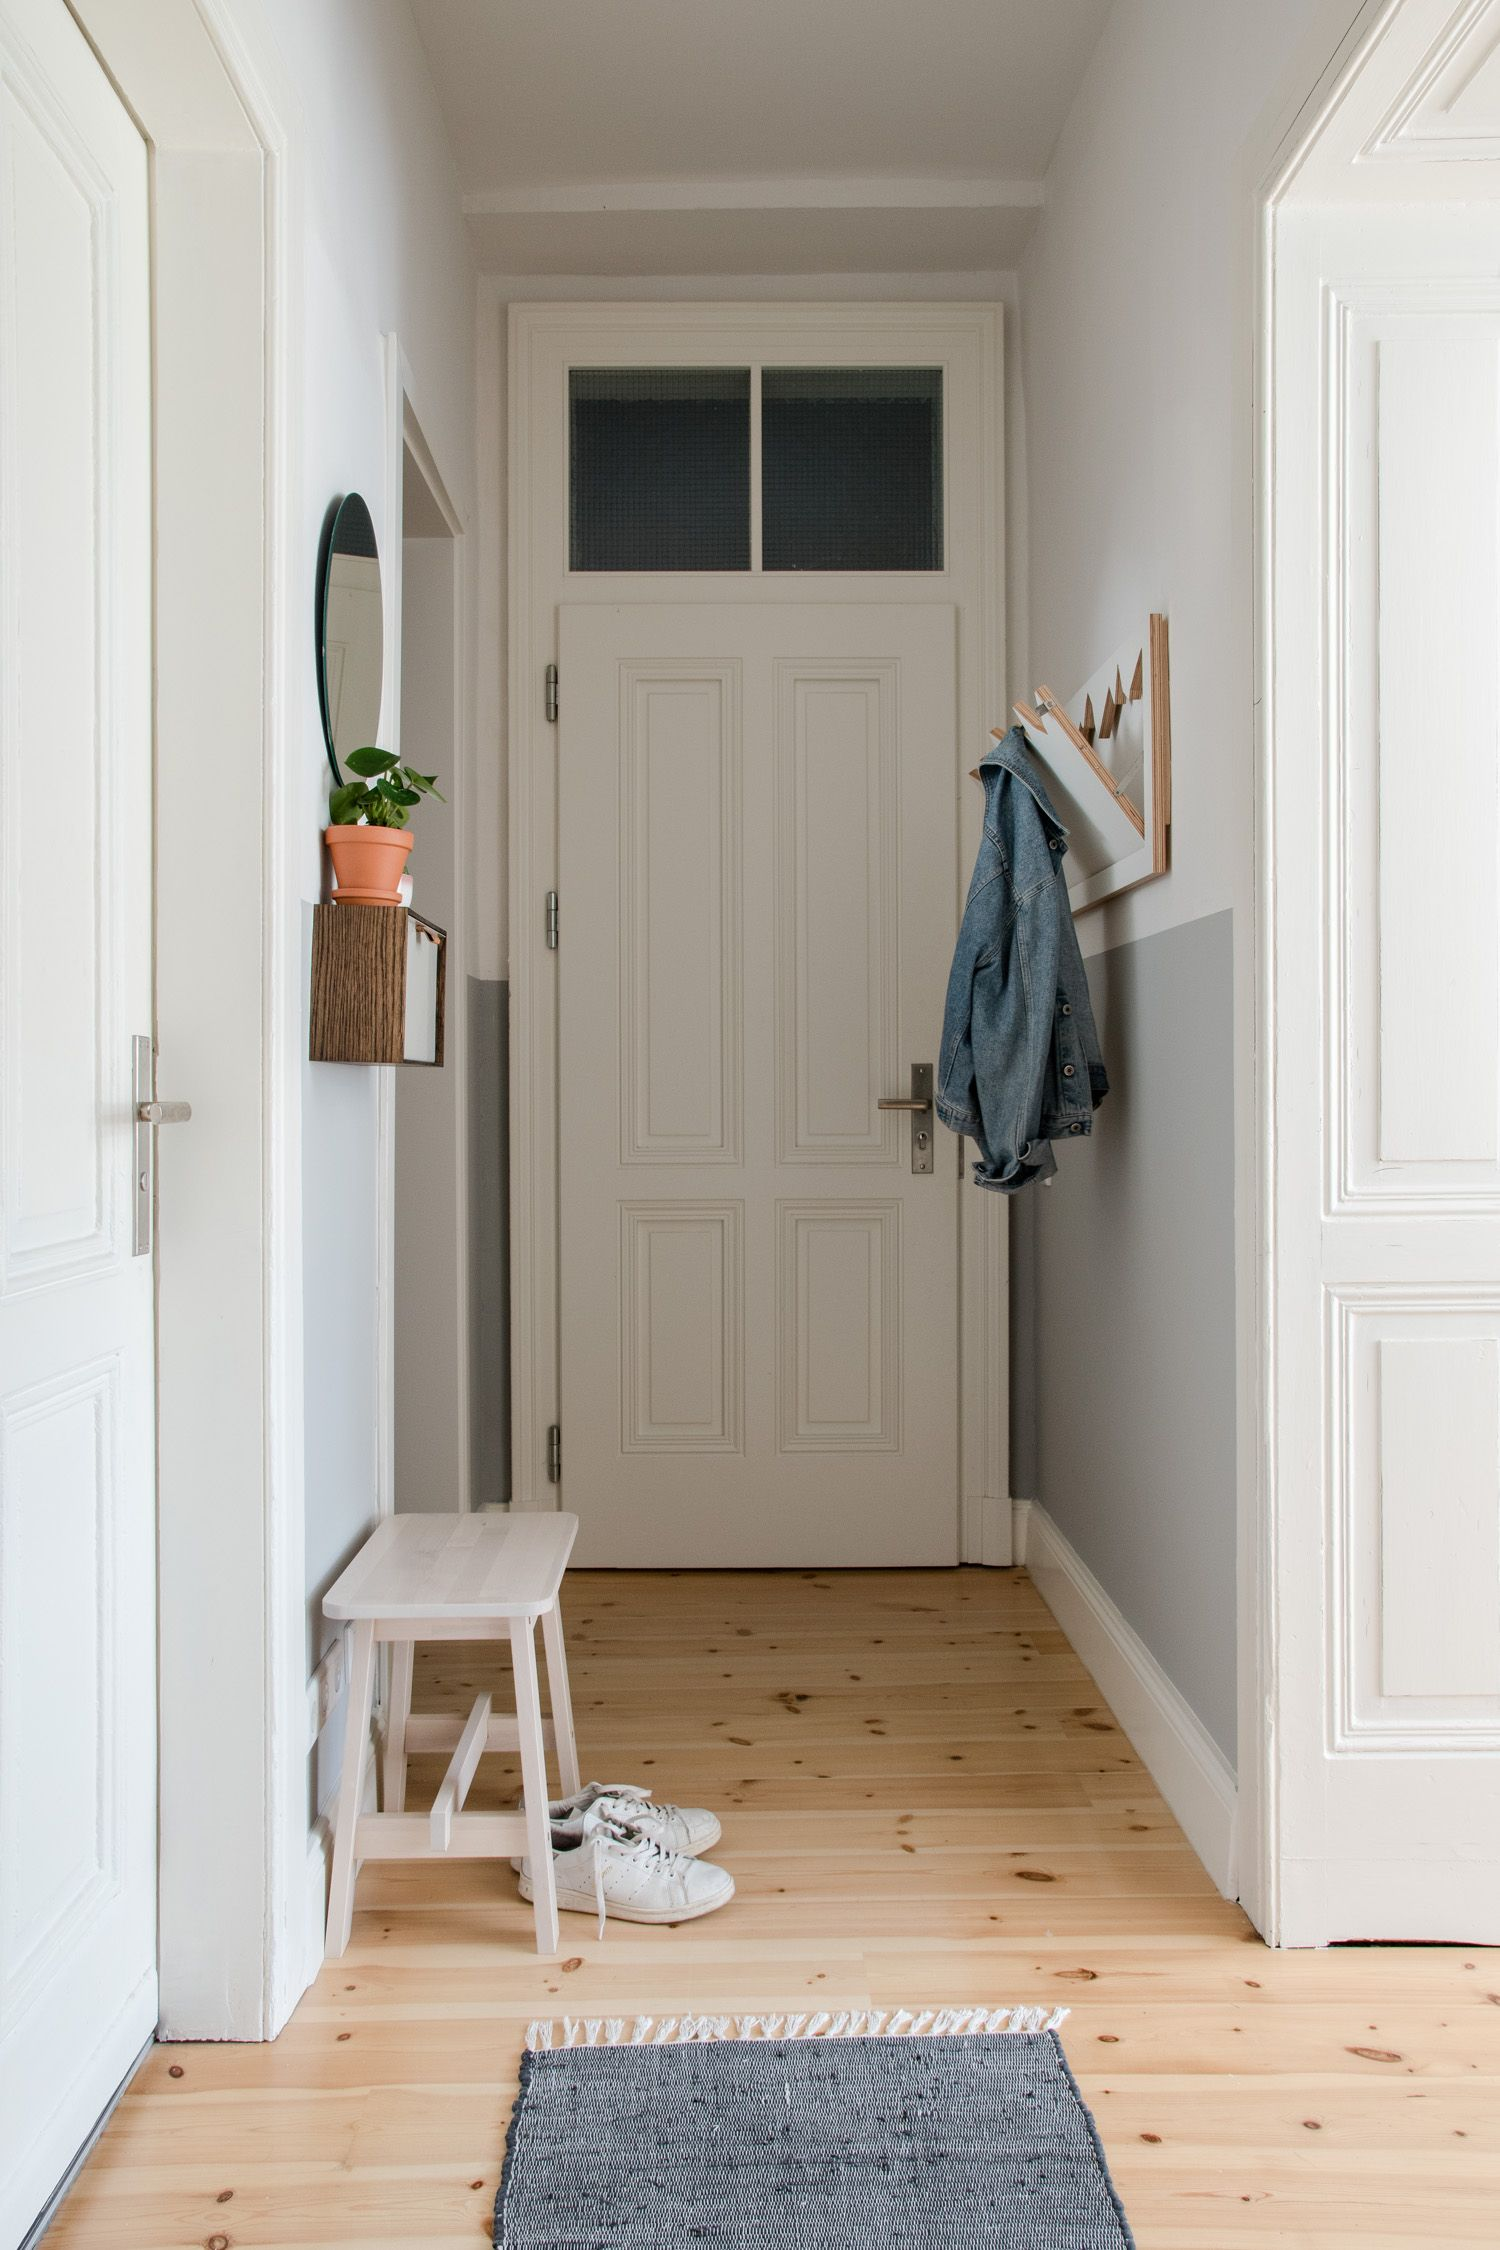 Thatu0027s How You Can Set Up Your Small Entryway: A Perfect Small Wardrobe, A  Little Wooden Bench And A Nice Carpet! Add Some Personal Interior Decor And  ...